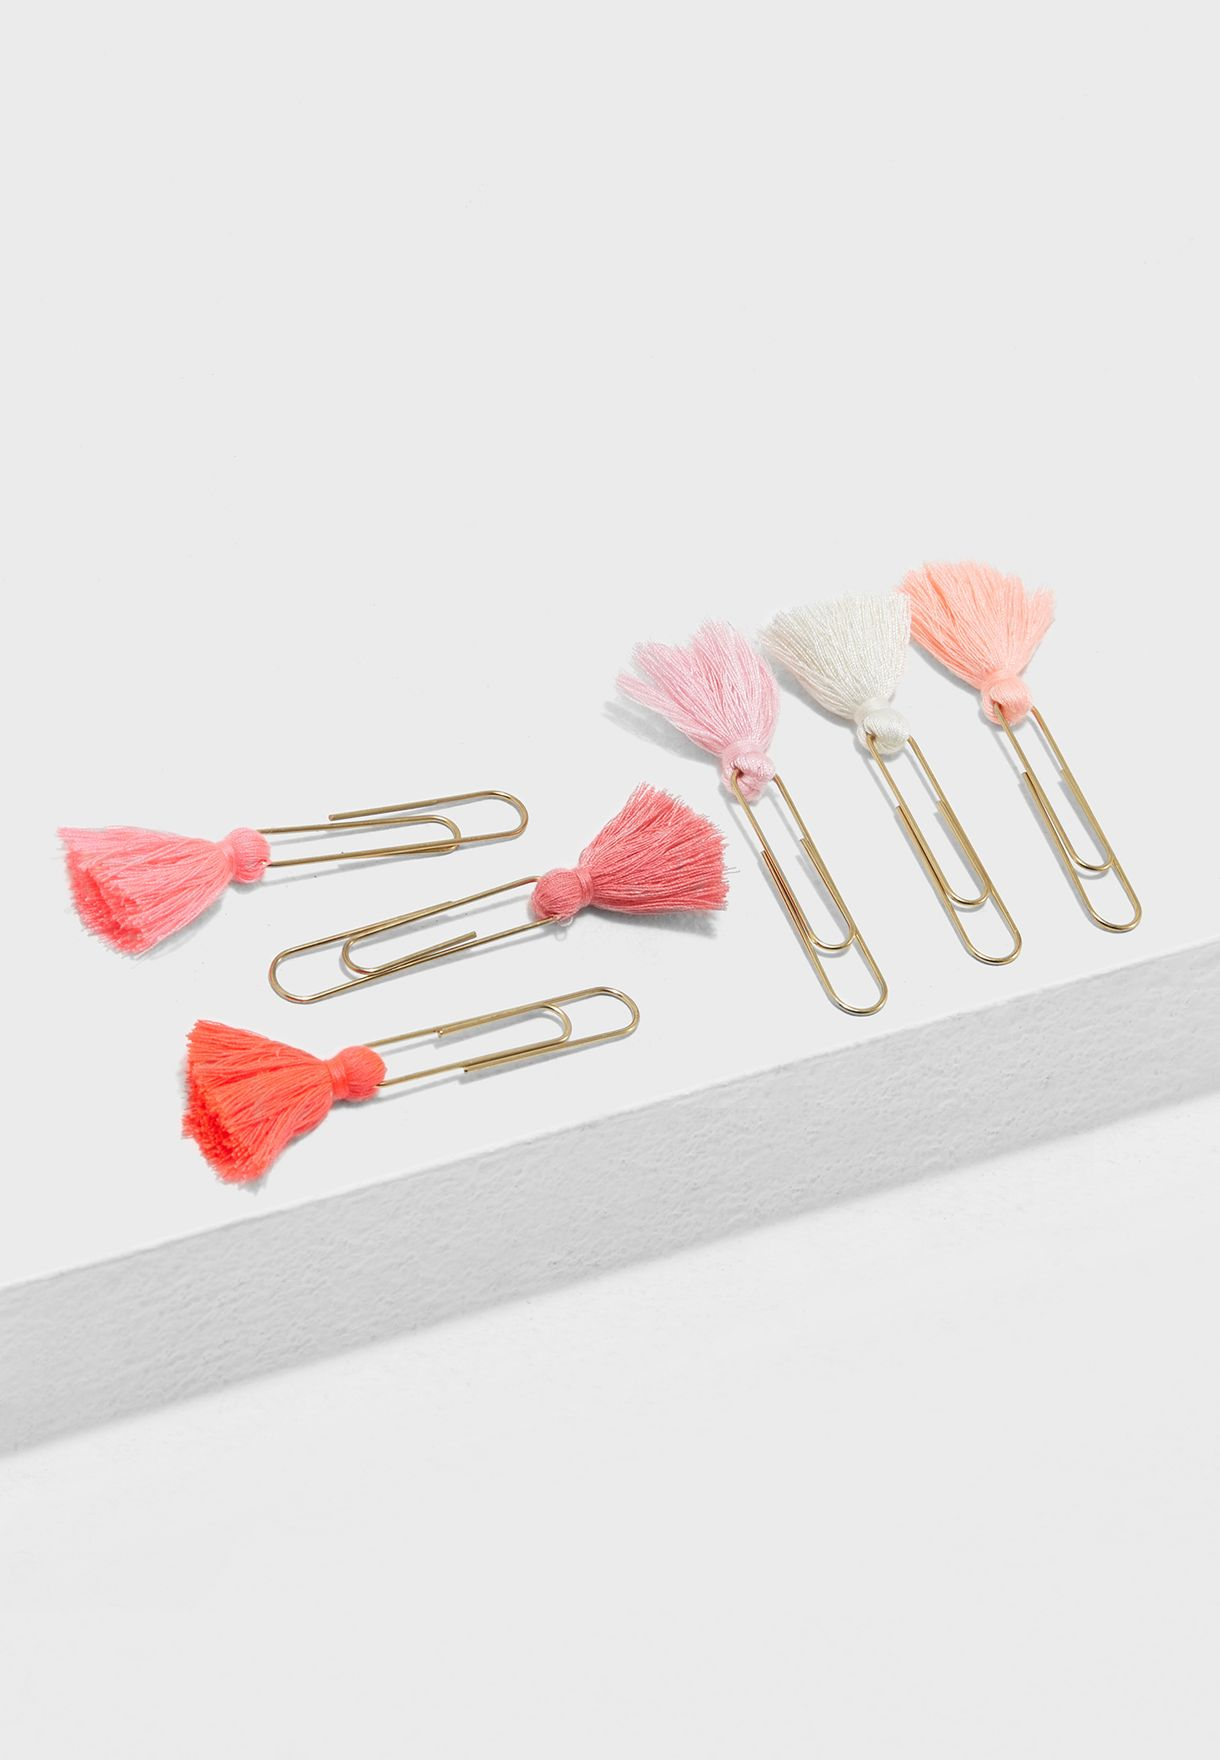 6 Tassel Paper Clips Set